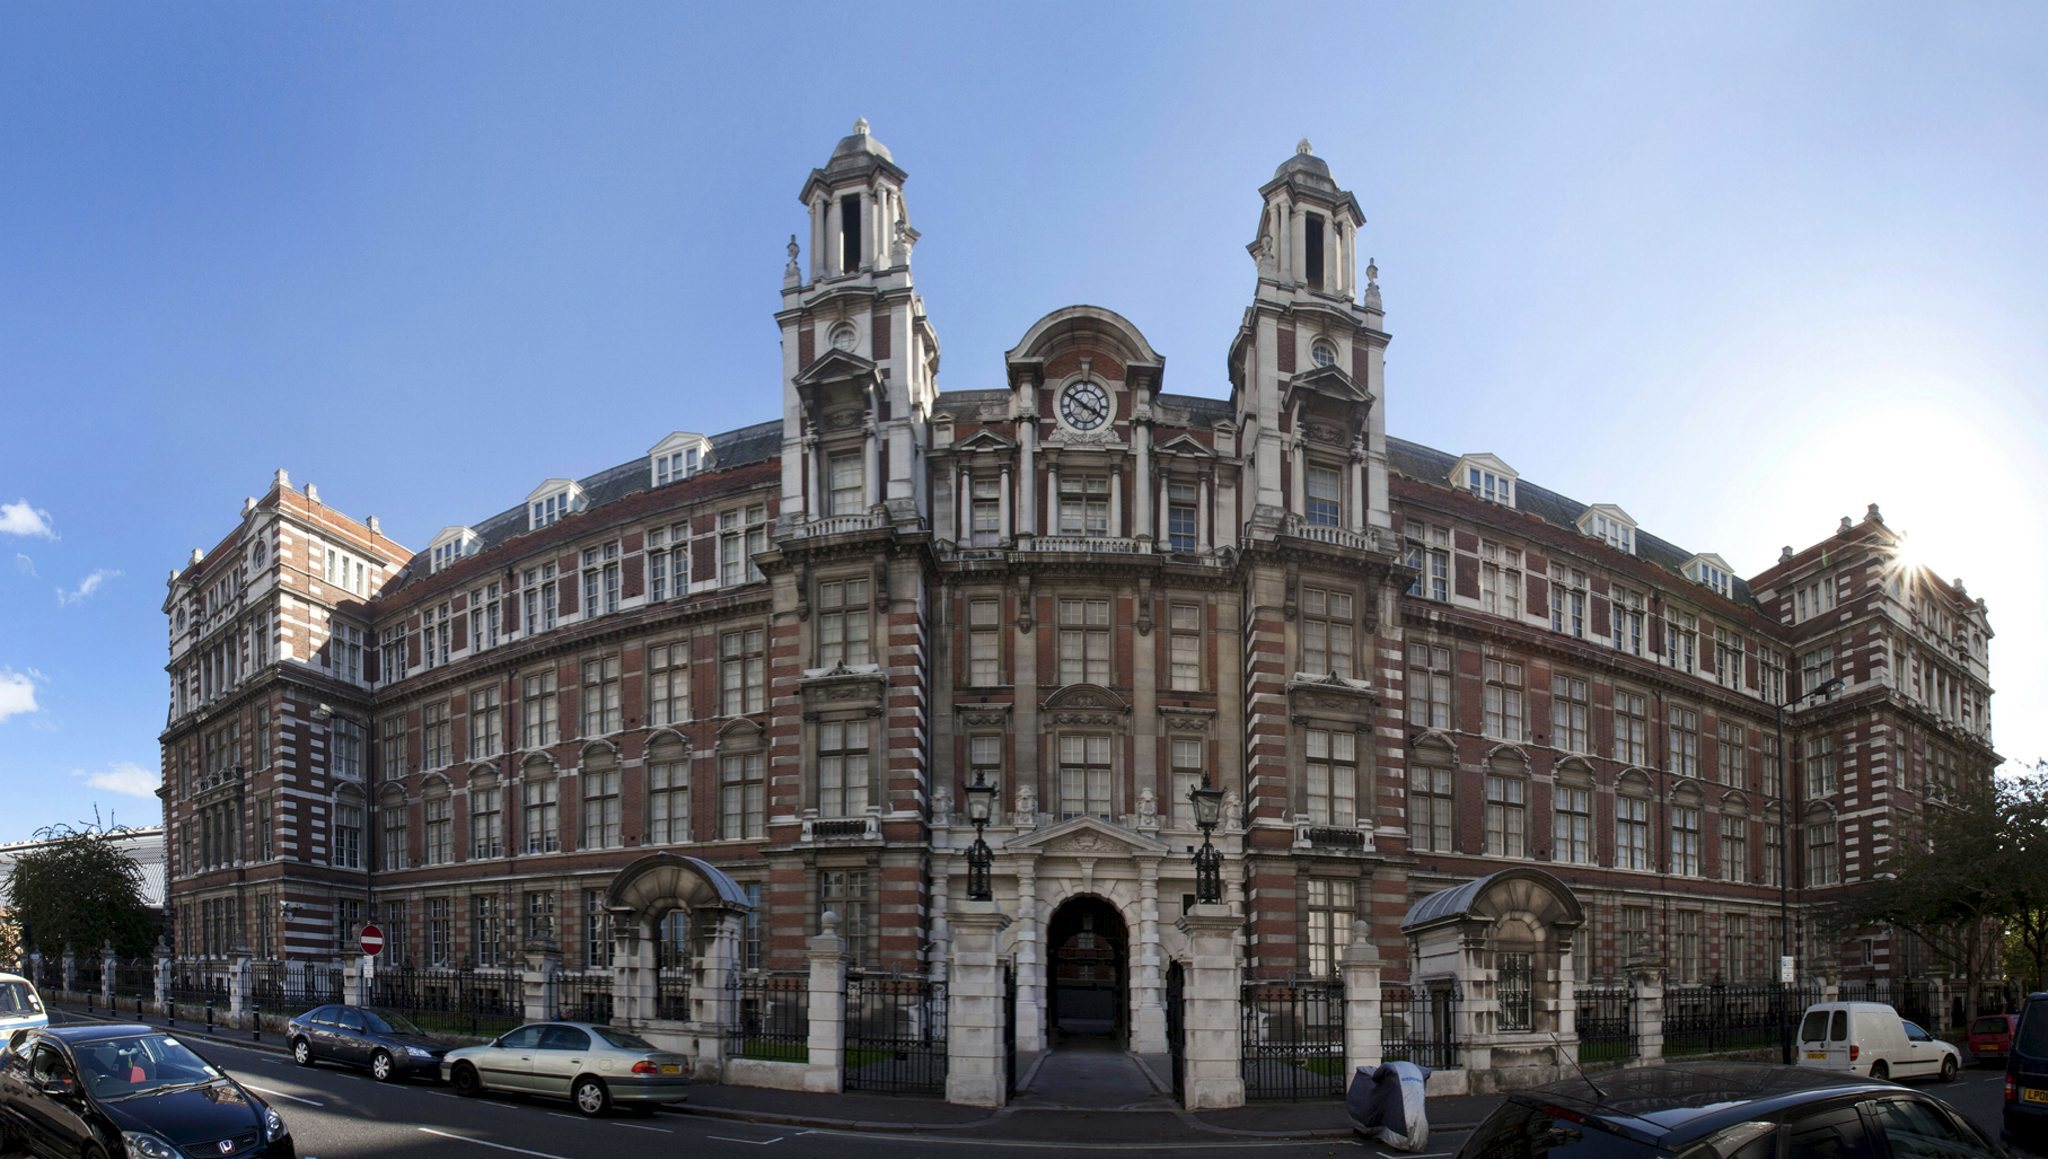 V&A Clothworkers' Centre